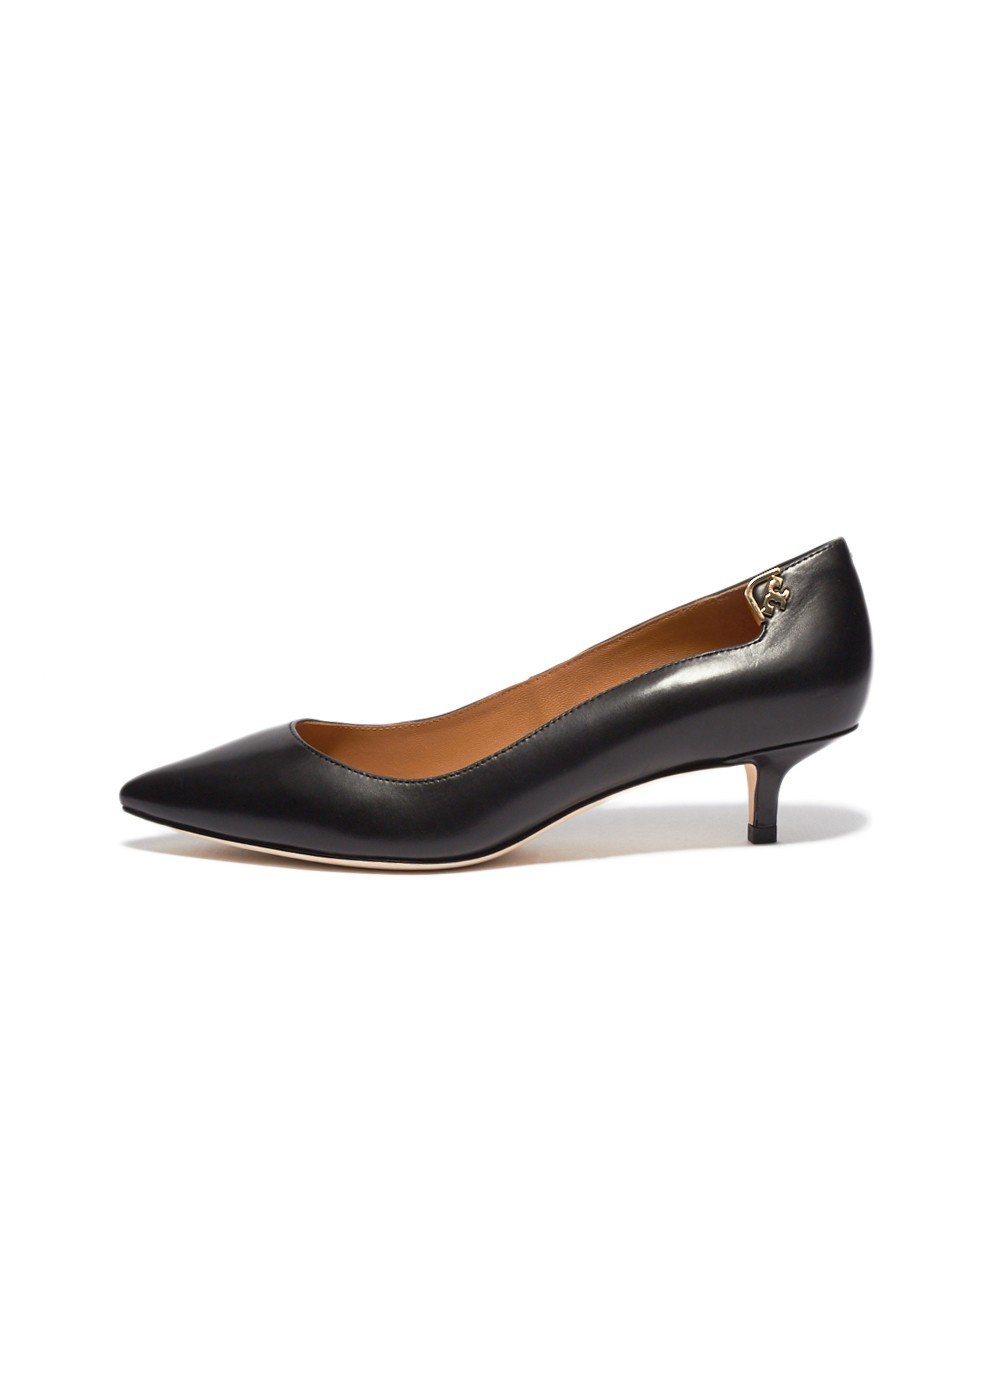 【最大46%OFF】ELIZABETH 40MM PUMP【BLACK】|BLACK|パンプス|【週末限定】Tory Burch - Shoes Collection -